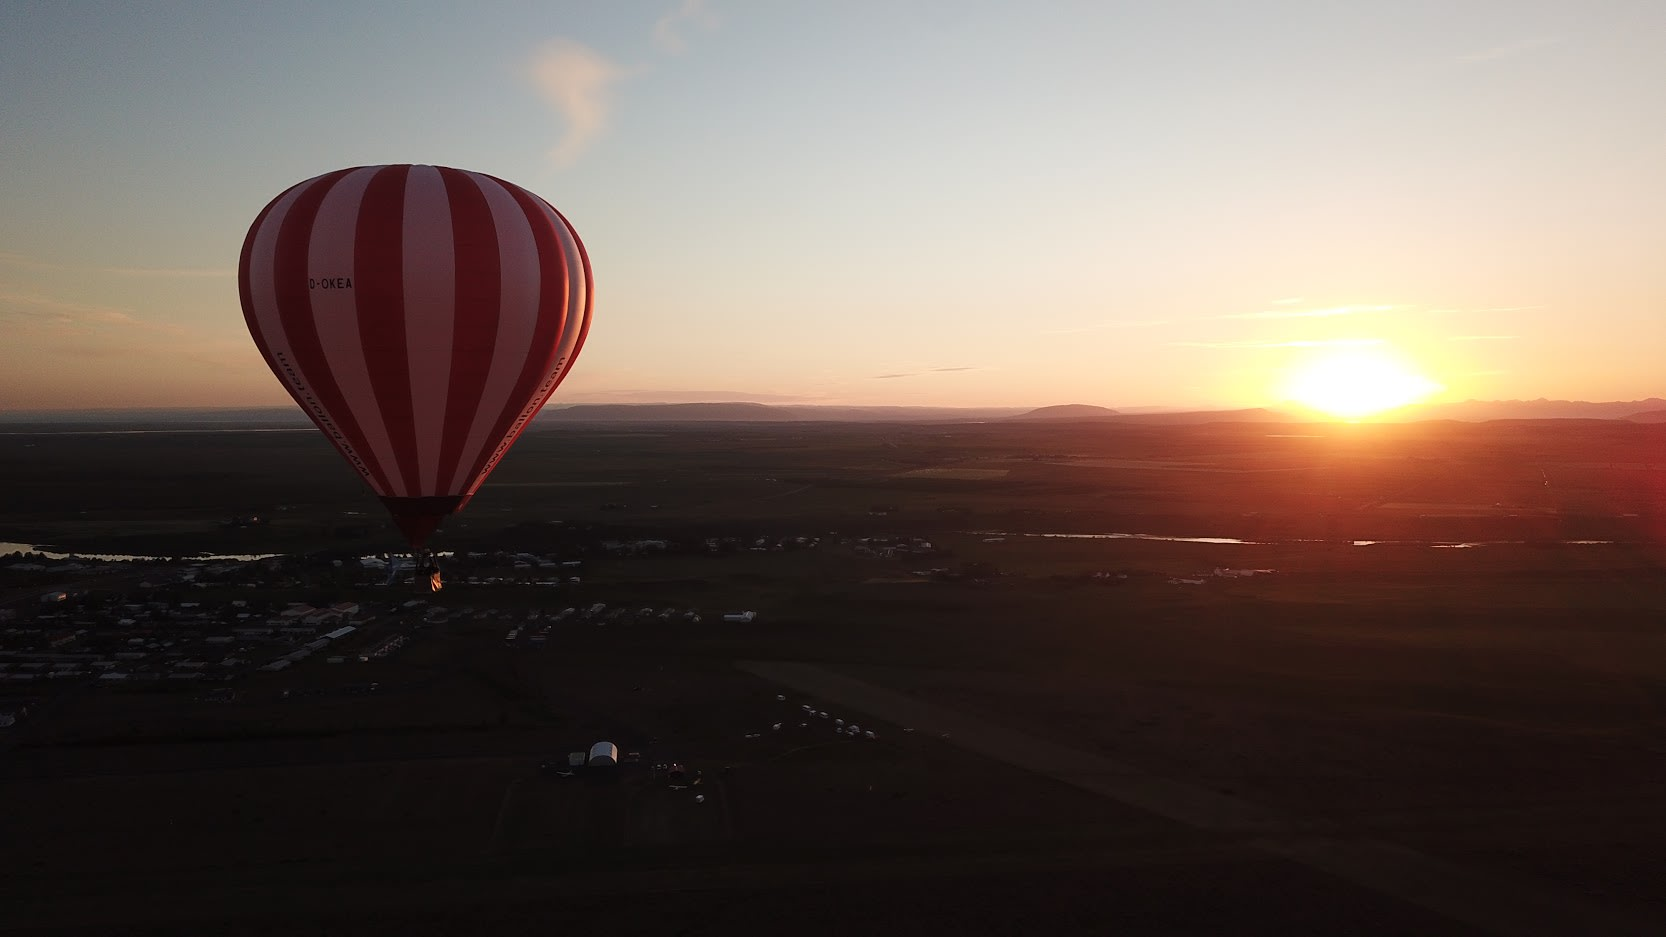 a red and white hot air balloon pictured flying over the South Iceland landscape at golden hour